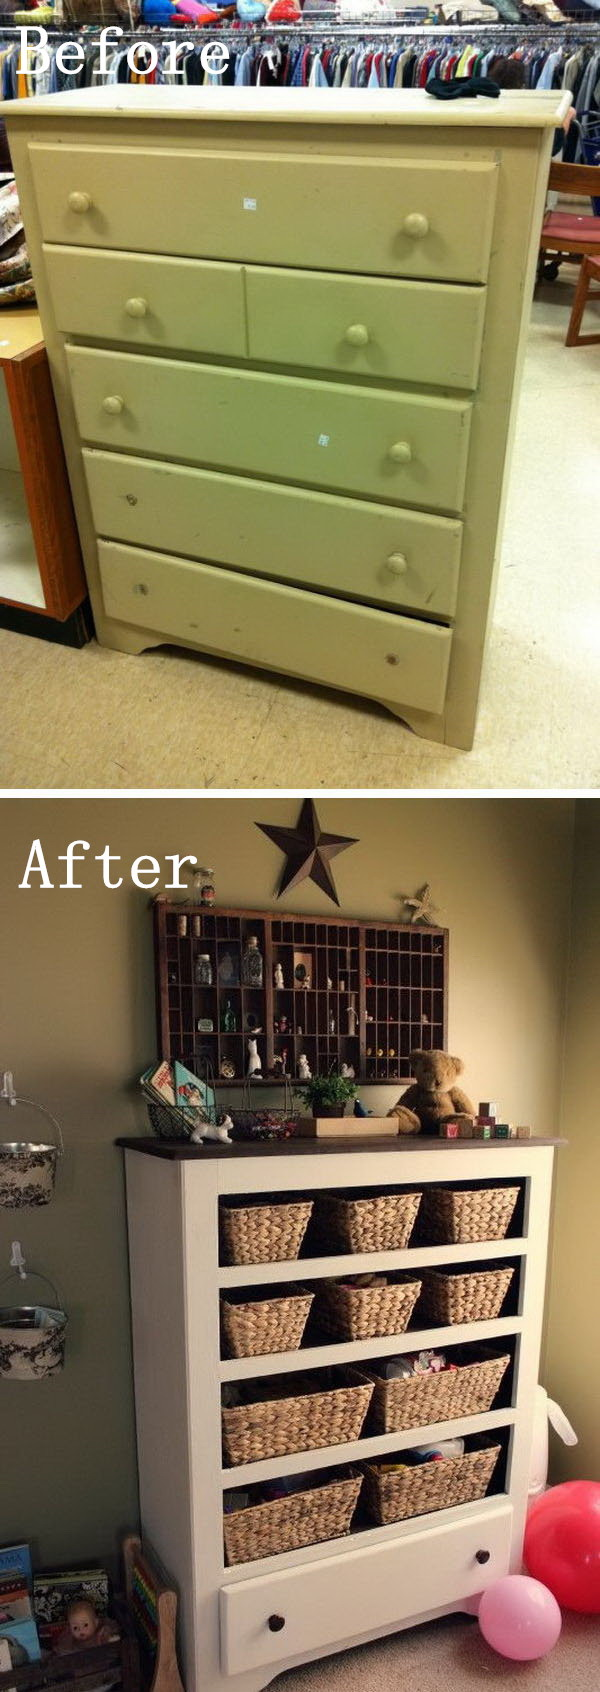 DIY Furniture Makeovers: Thrift Store Drawer Repurposed into Funny Functional Storage.